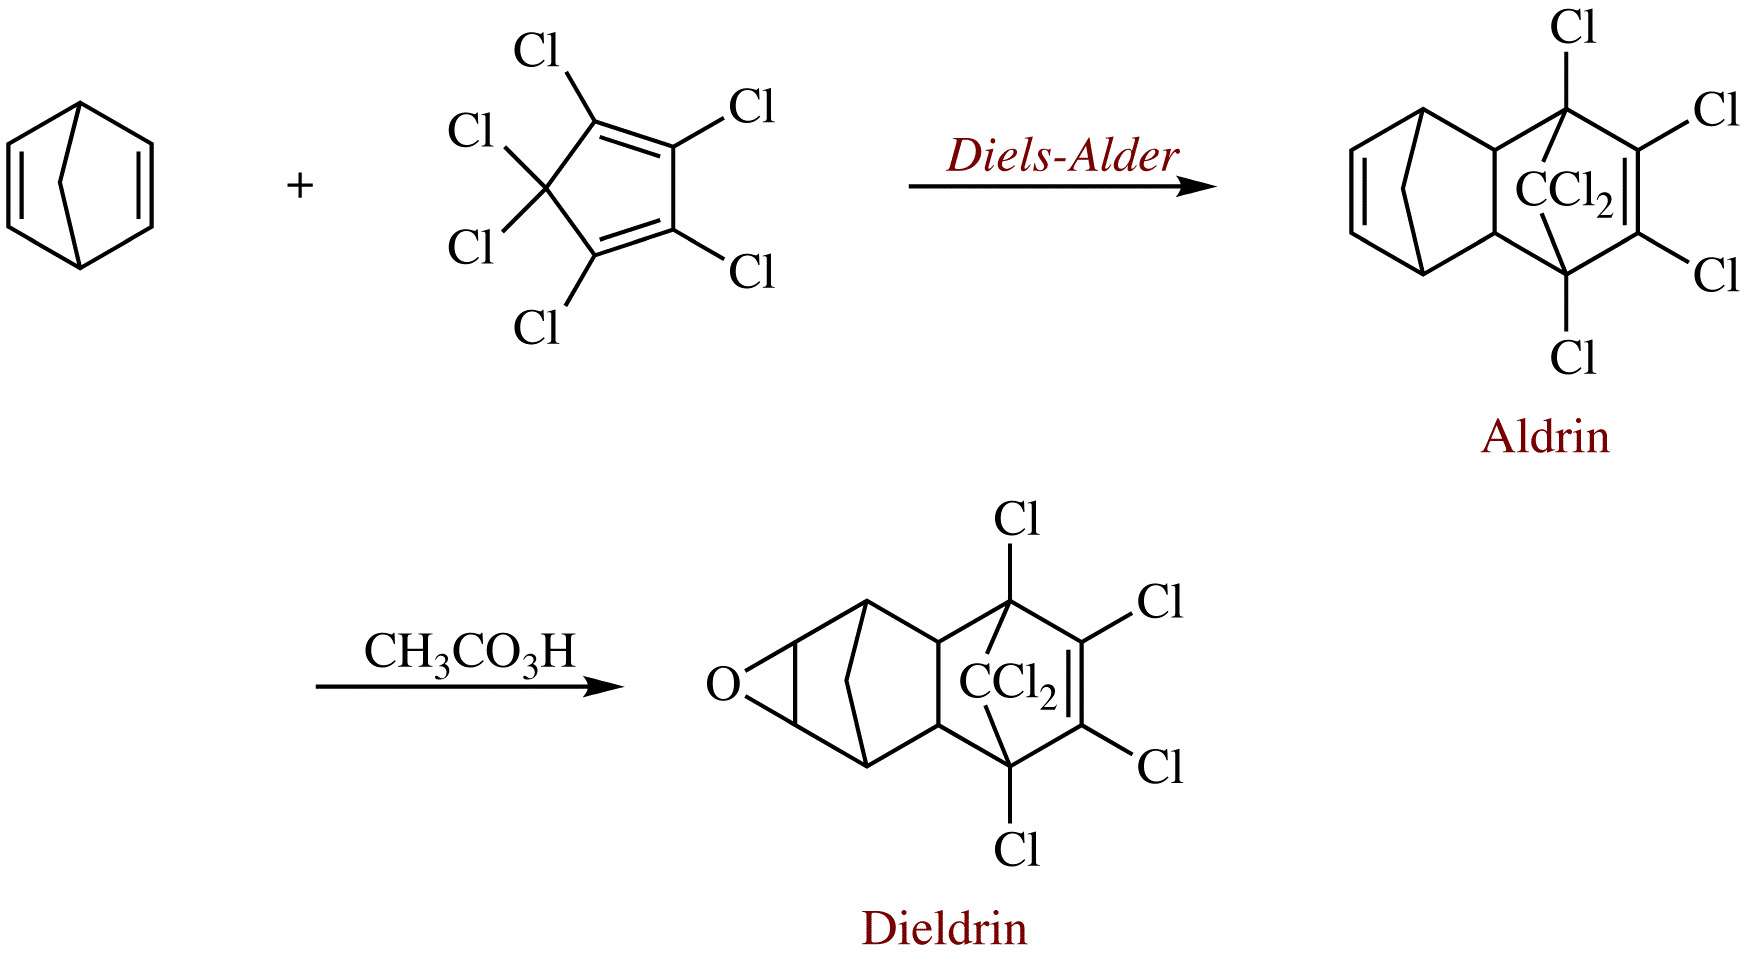 Fileldrinsynthesis